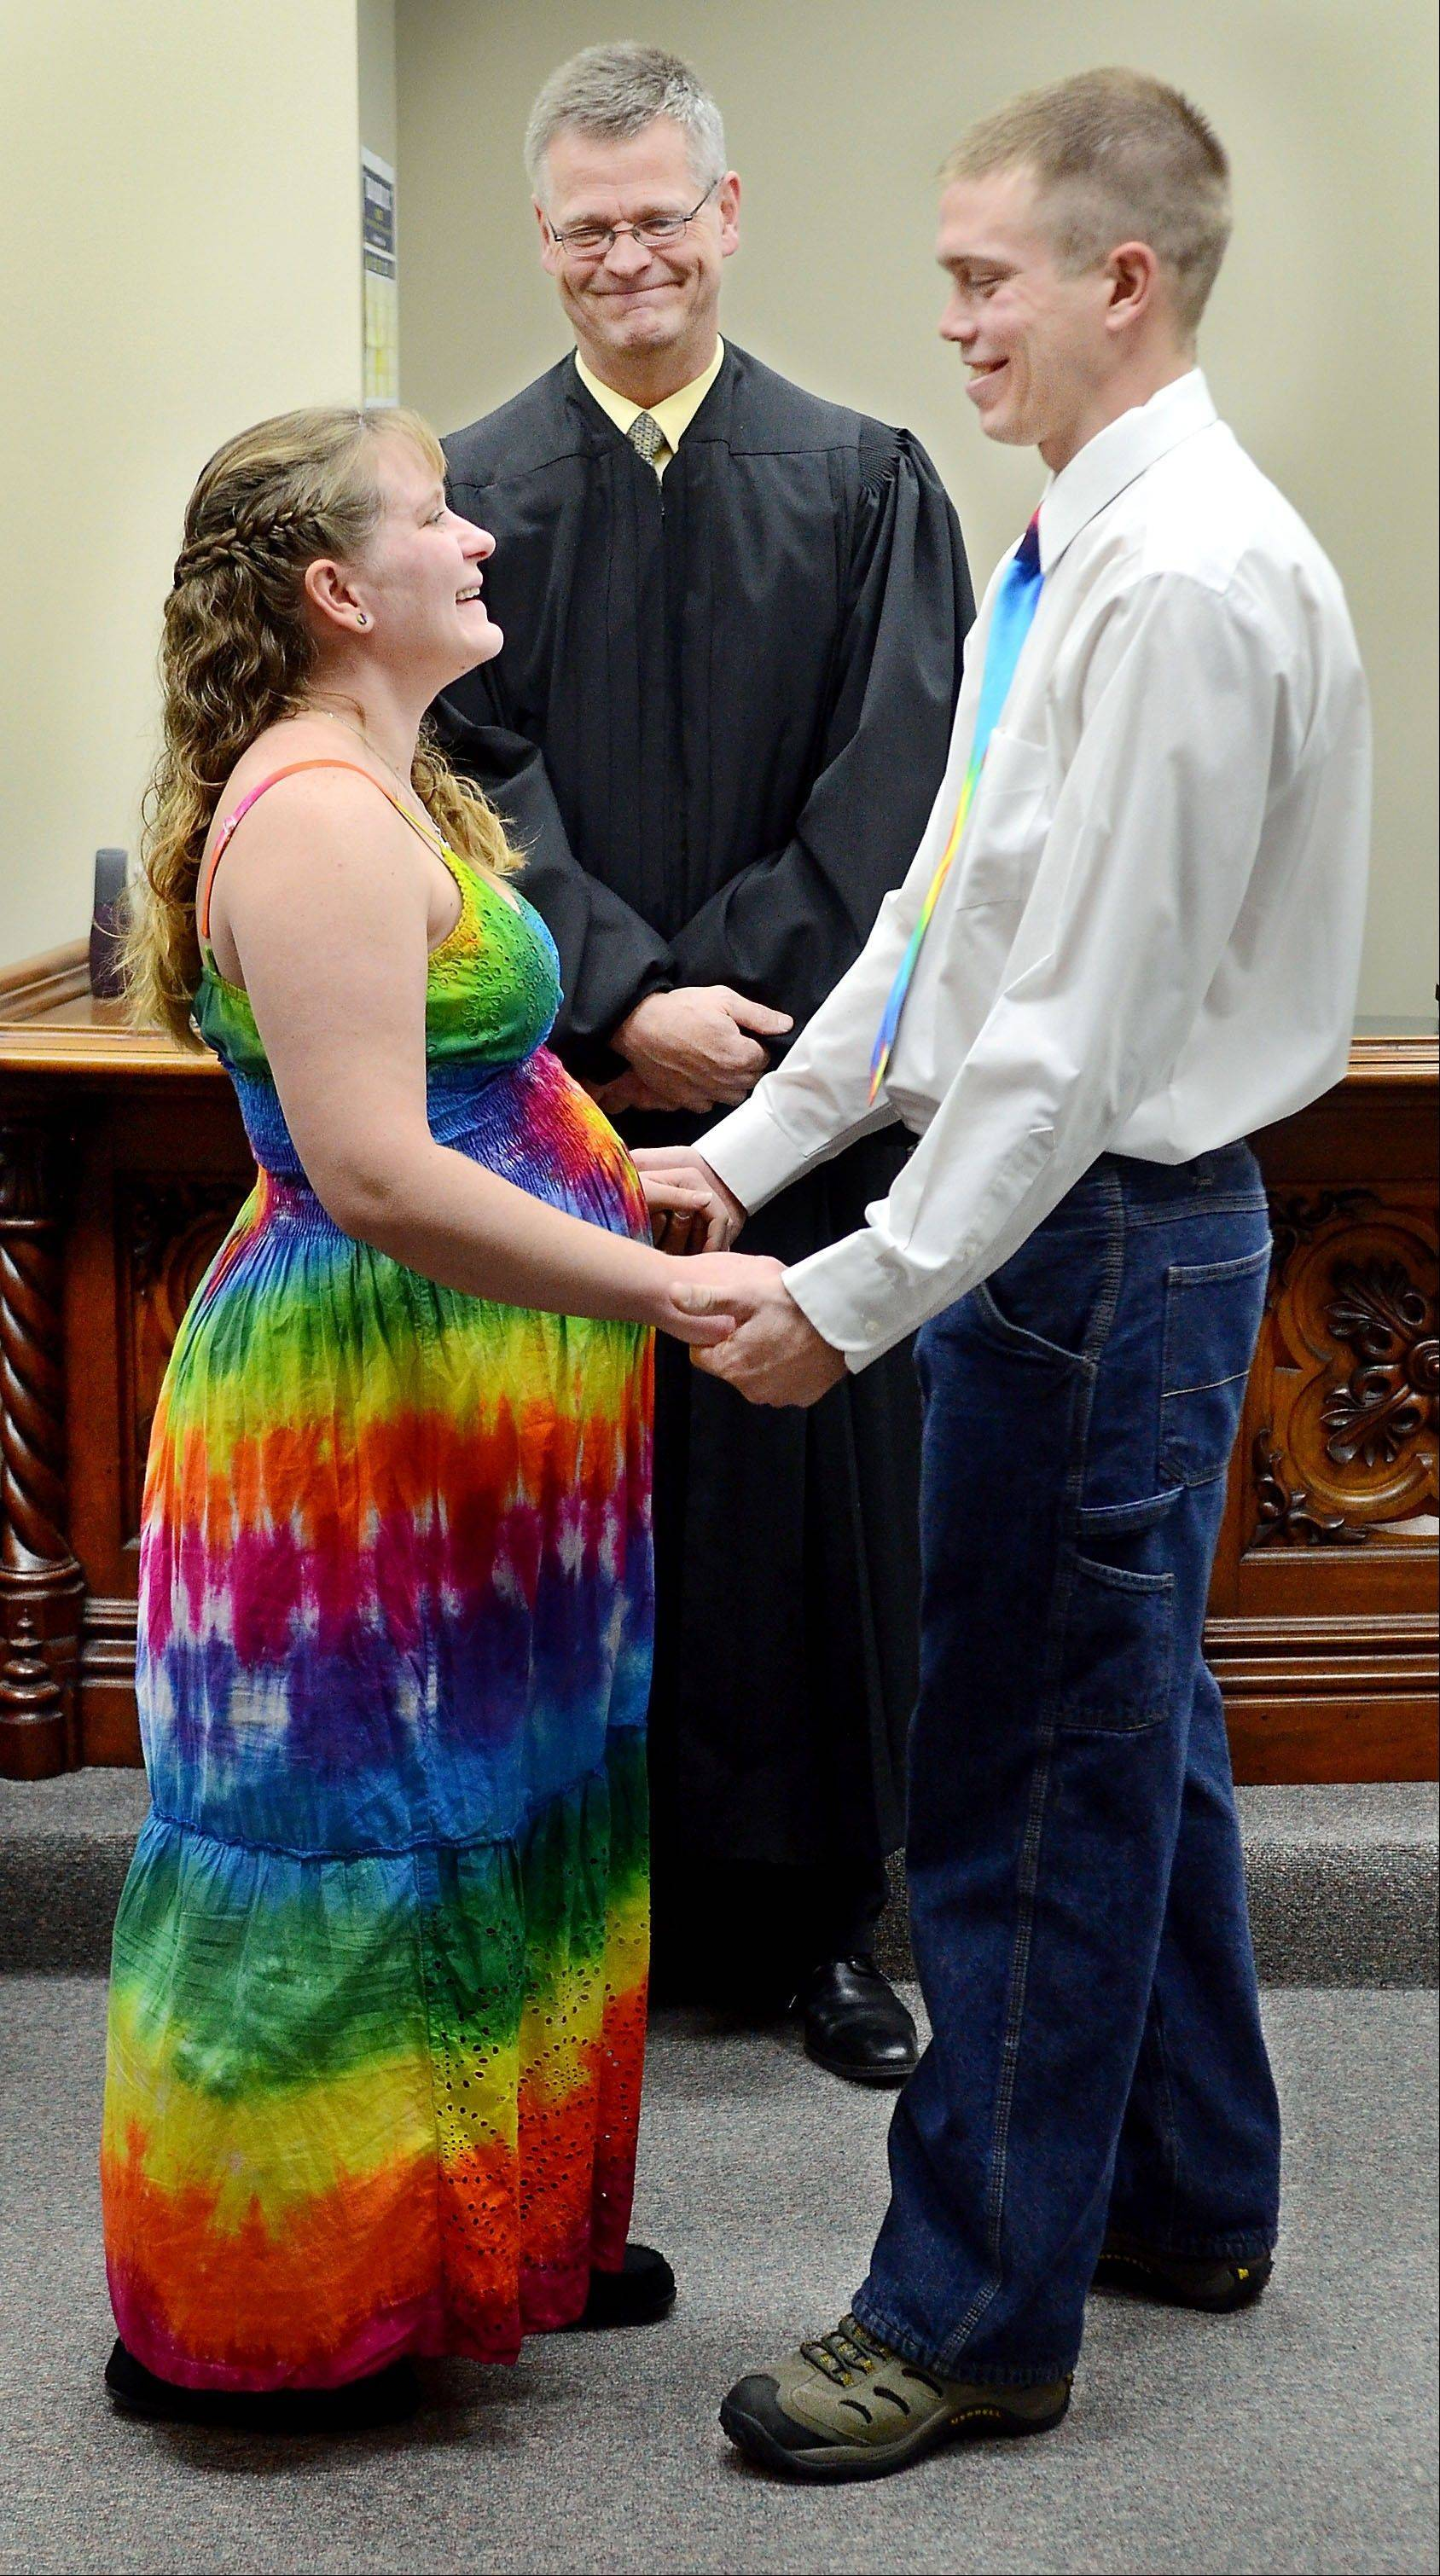 Danille Leavens and Charles Reid of Eau Claire were married Wednesday at the Eau Claire County Courthouse by Court Commissioner Nathan Novak in Eau Claire, Wis. The couple chose the memorable date because of its uniqueness and jokingly said for its ease to remember.